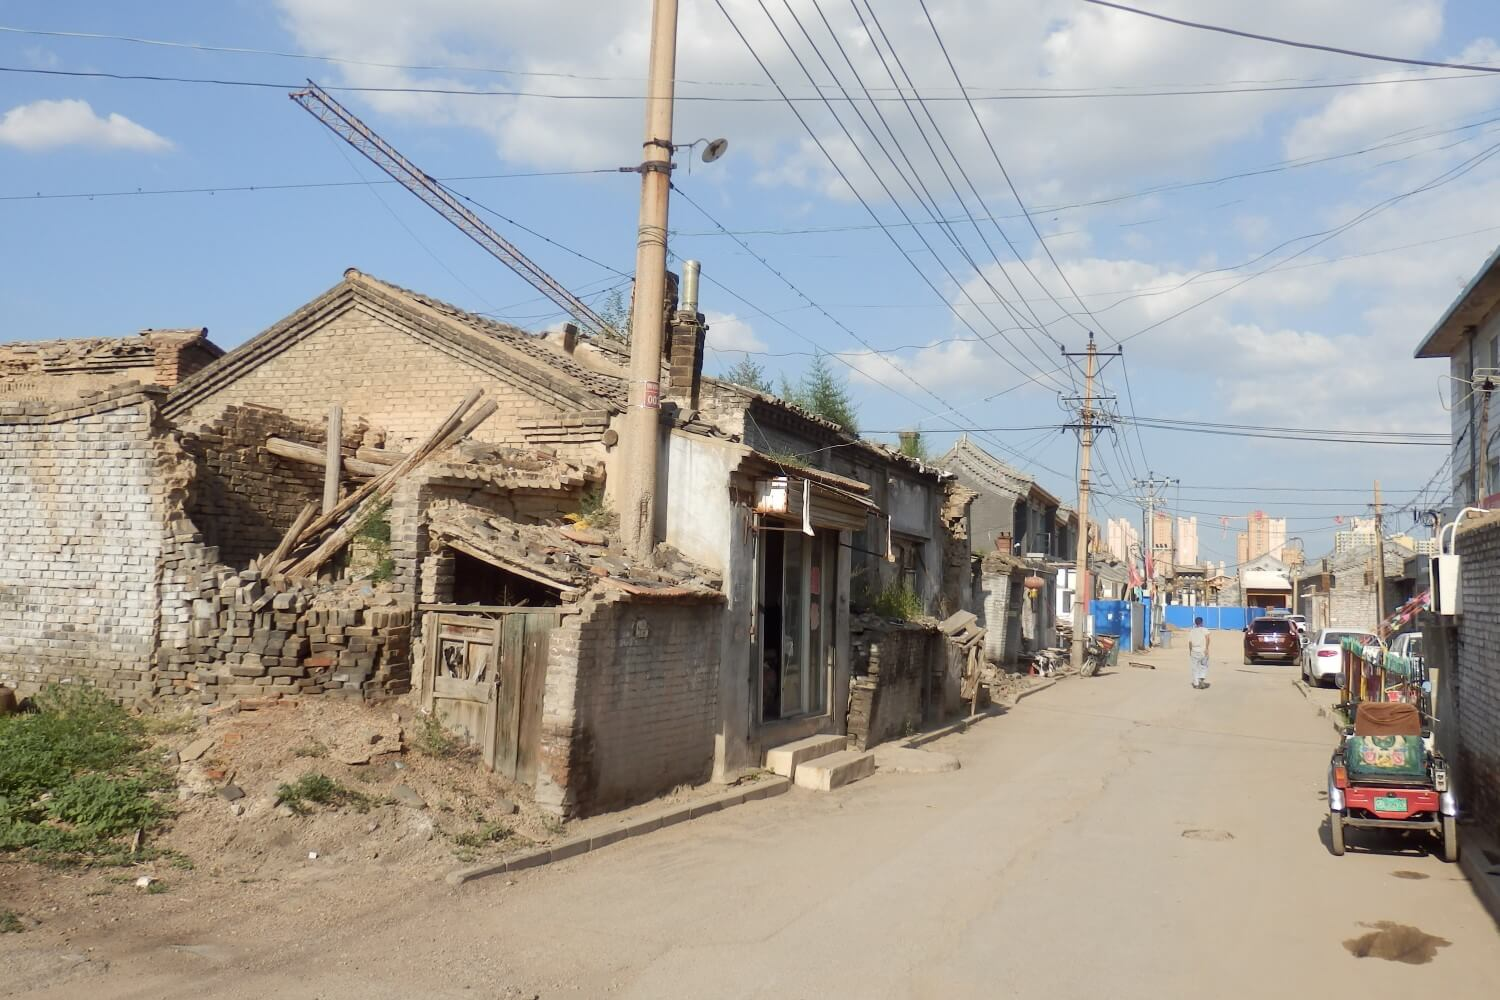 Part of the old inner city of Datong, China